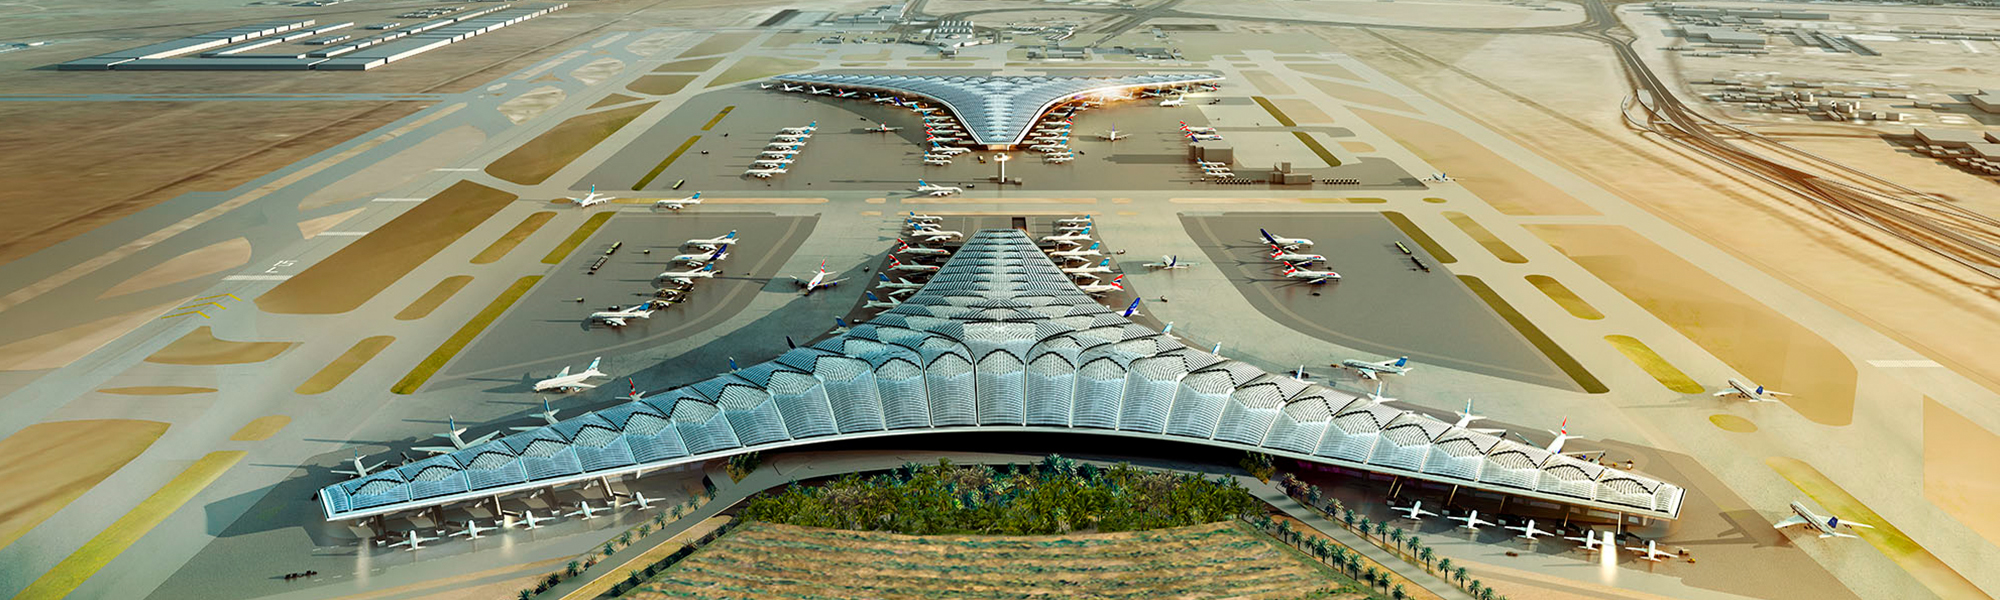 Dextra S Rebar Couplers And Pt Bars For Kuwait International Airport Dextra